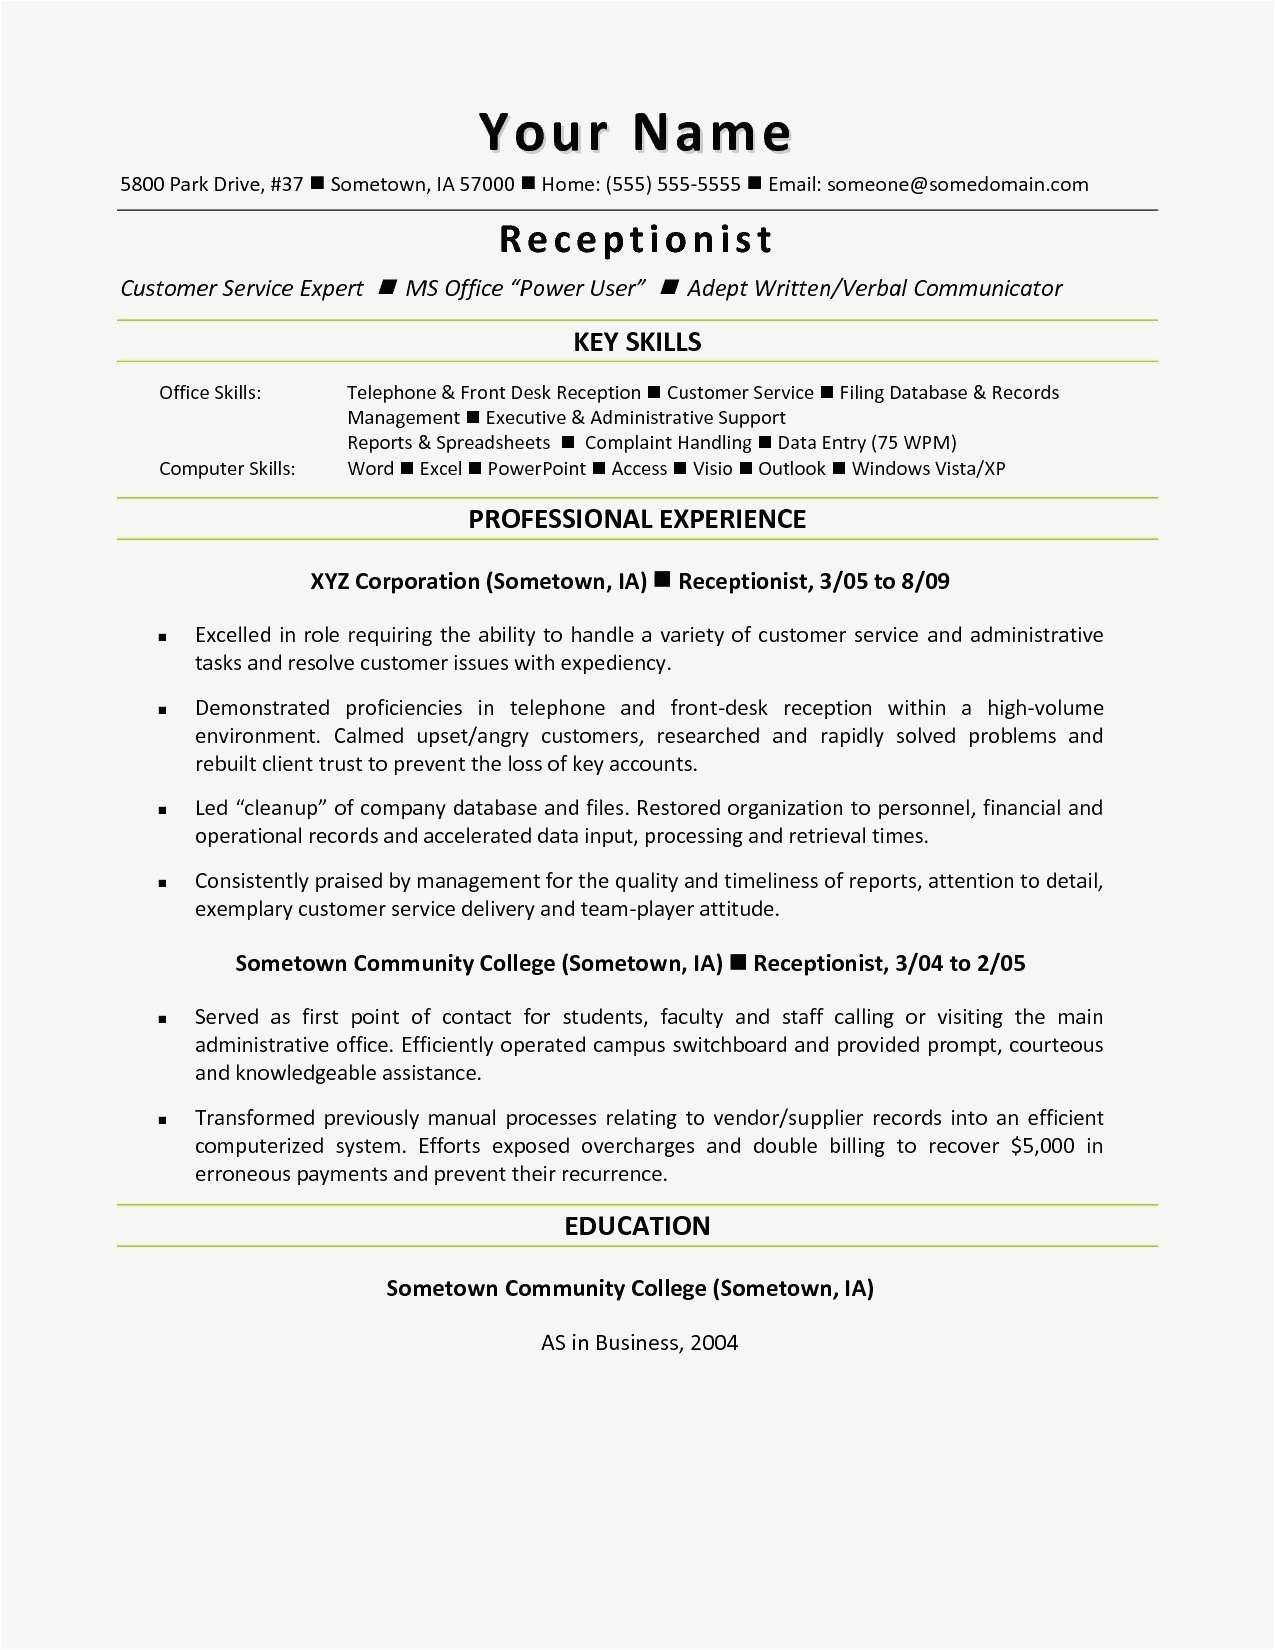 Financial Services Resume Template - Executive assistant Resume Samples Examples Word – Free Templates